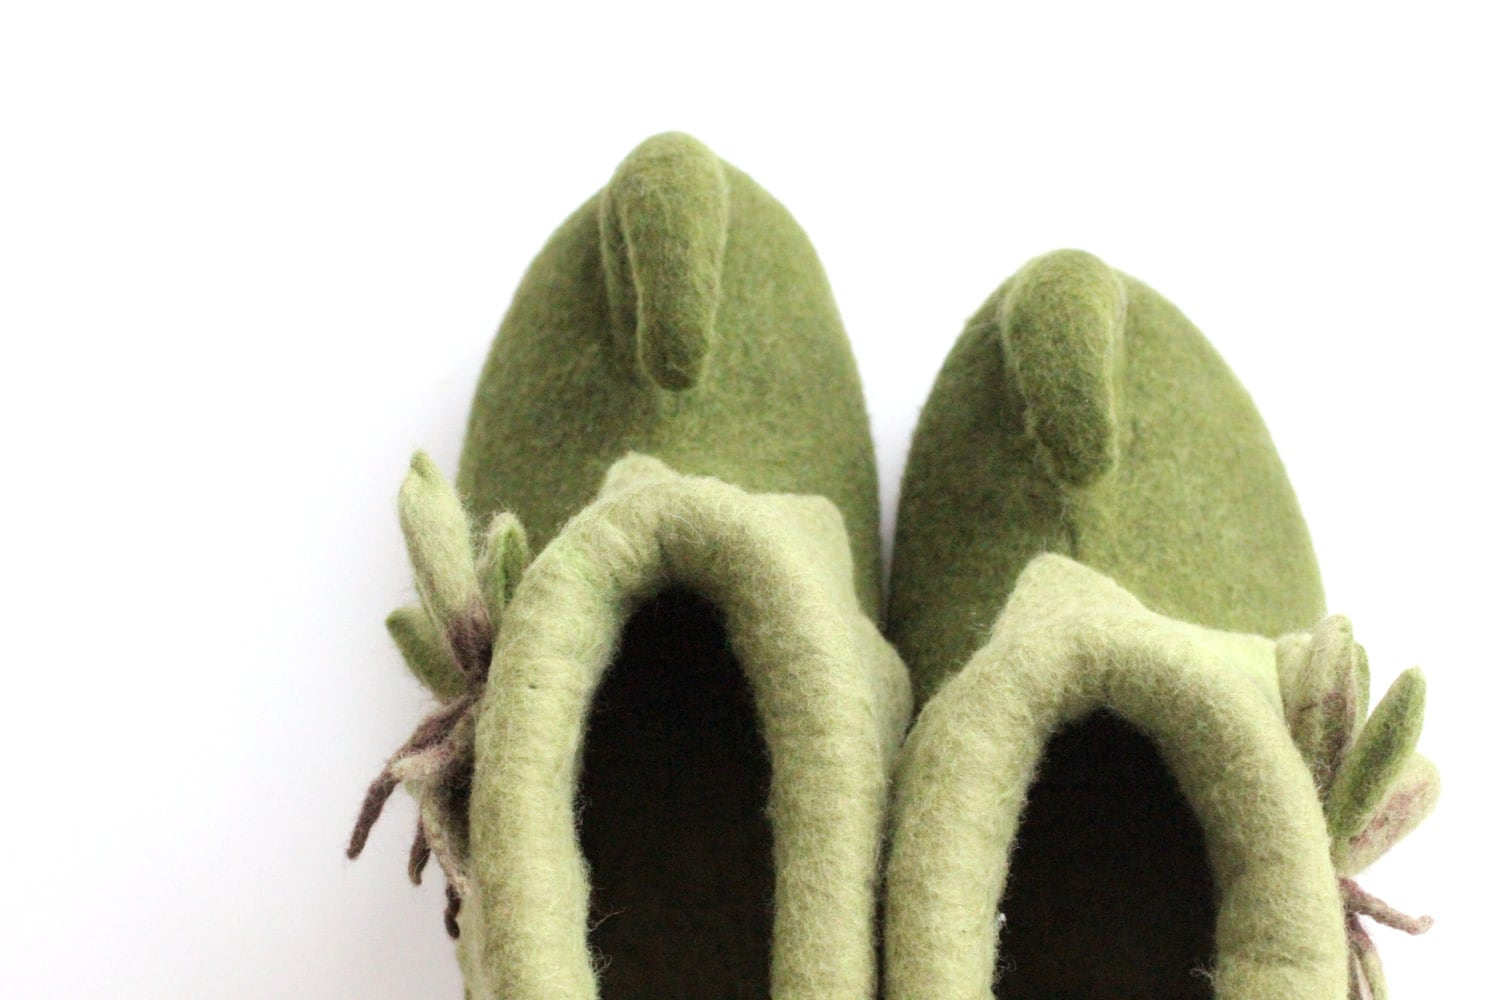 Felted elf shoes - fairy felted boots - green fairy - shoes - felted slippers - warm house shoes - gift for her - made to order 5a672b